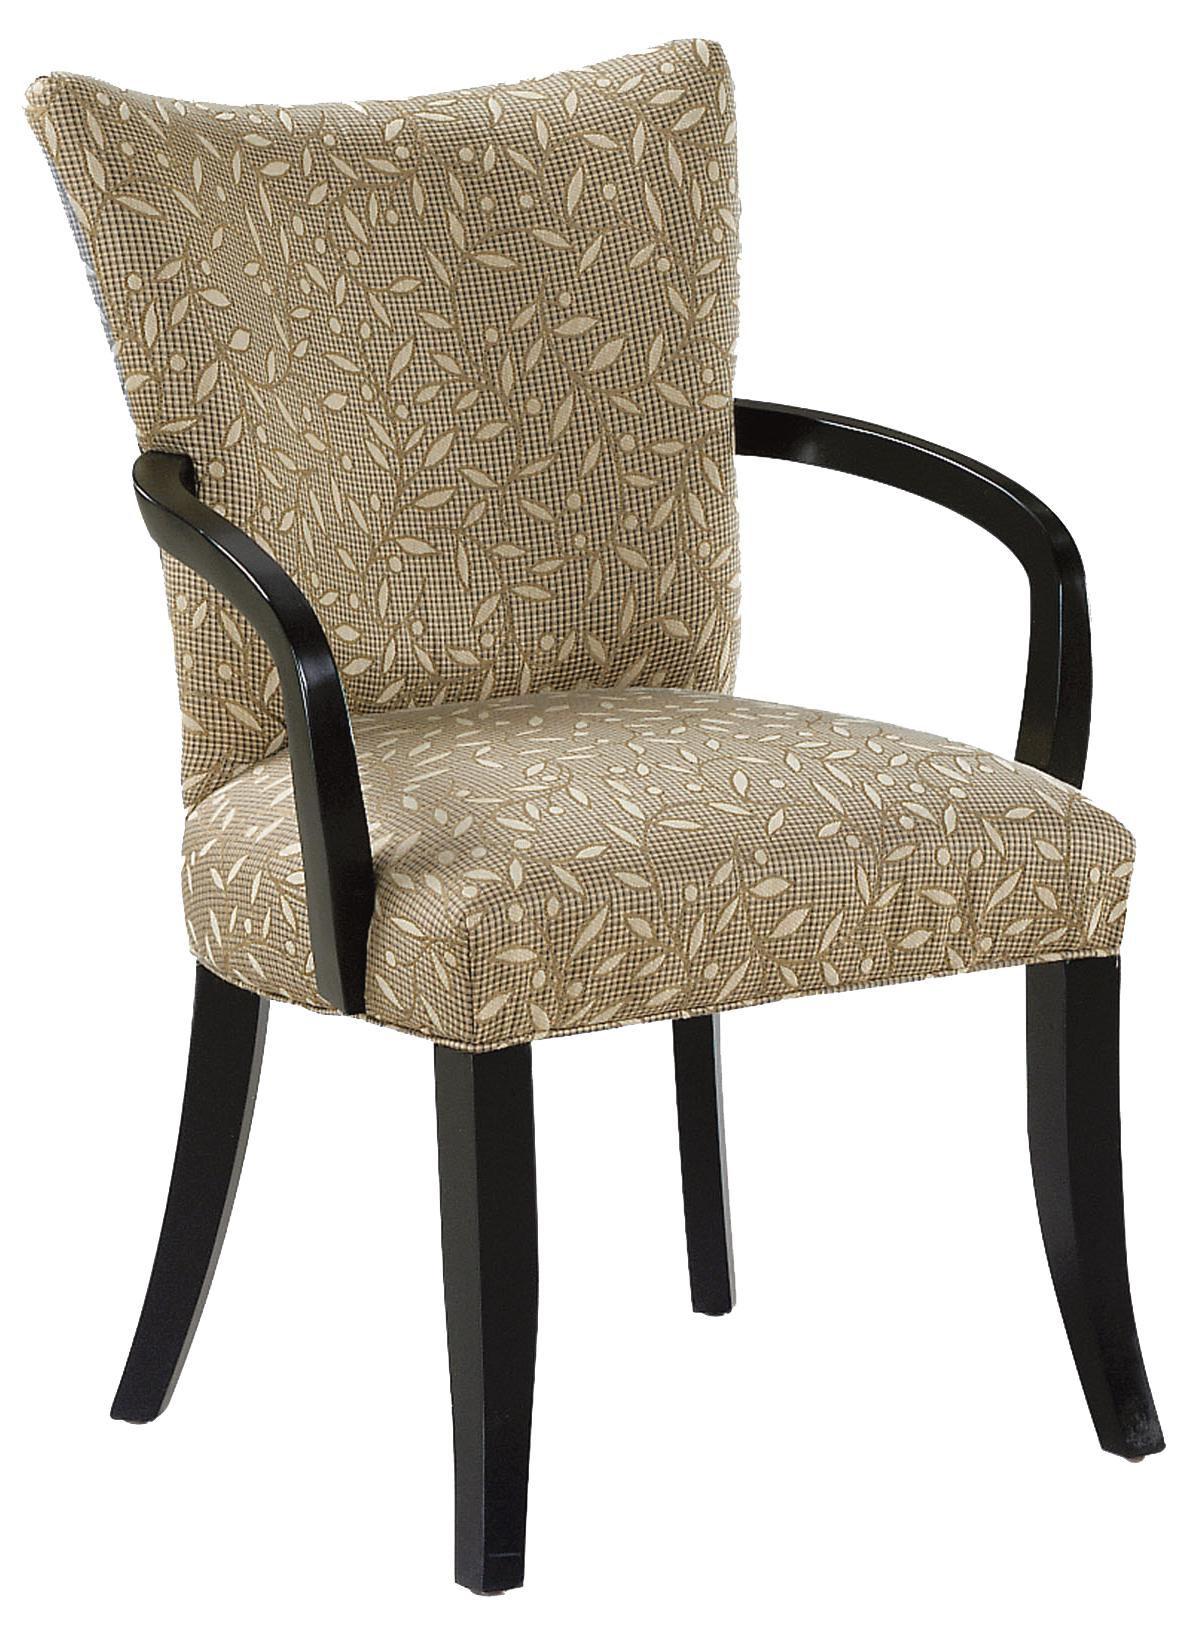 Fairfield Chairs Contemporary Arm Chair - Item Number: 6069-04